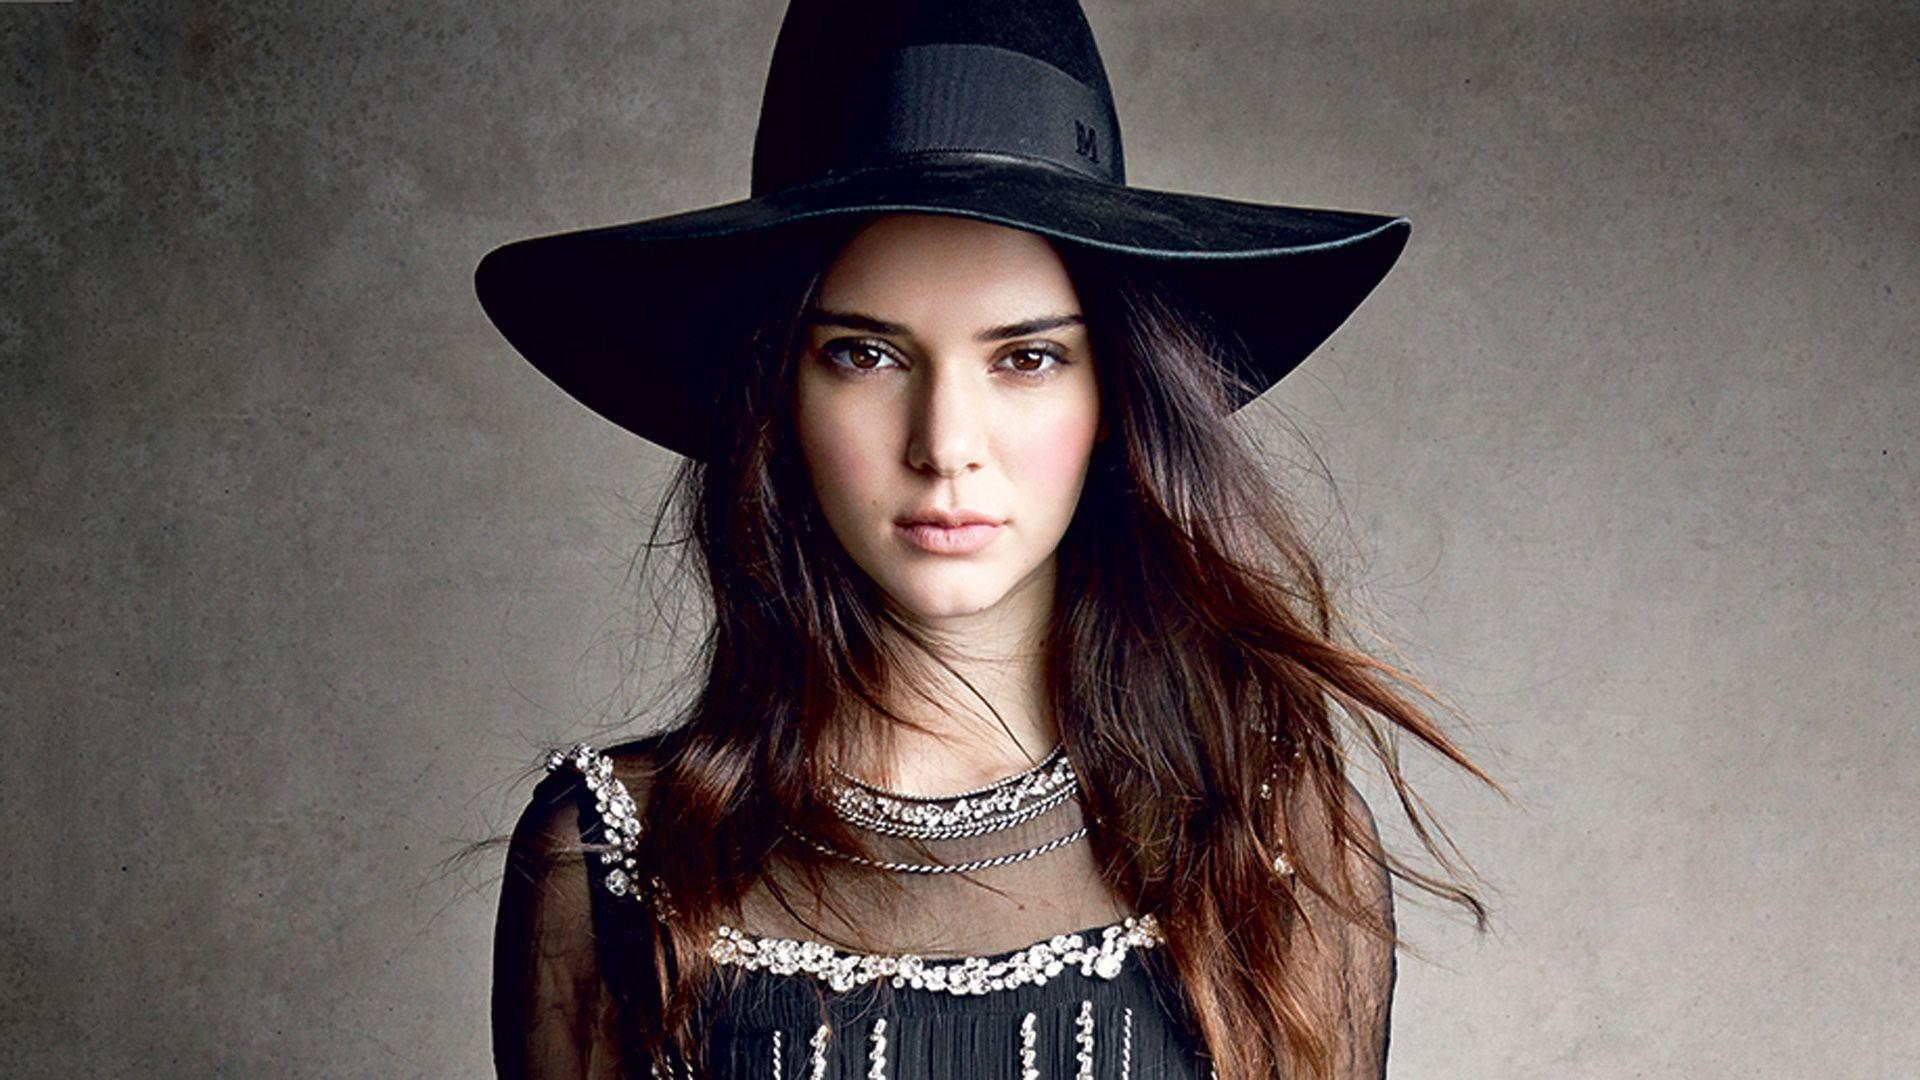 Kendall Jenner Beautiful HD Wallpapers